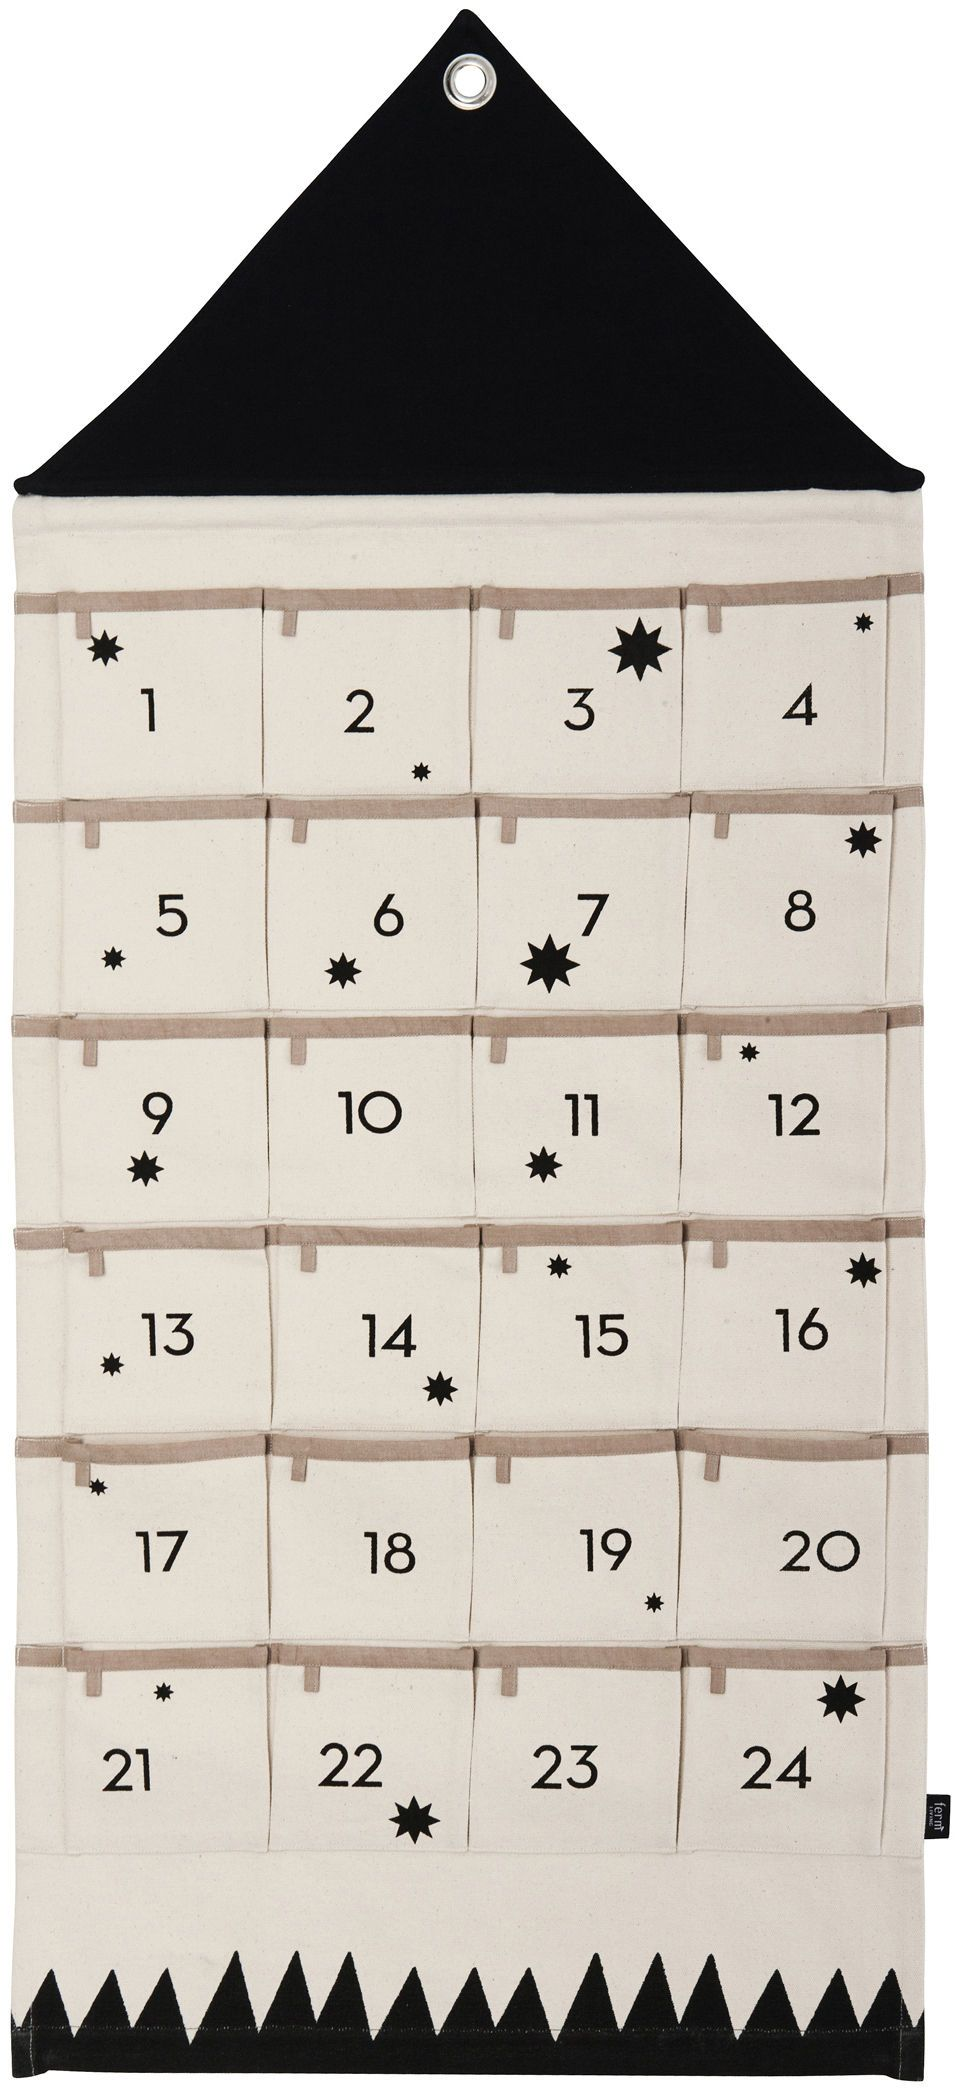 Calendrier de l'avent House Ferm Living - Noir/Beige | Made In Design